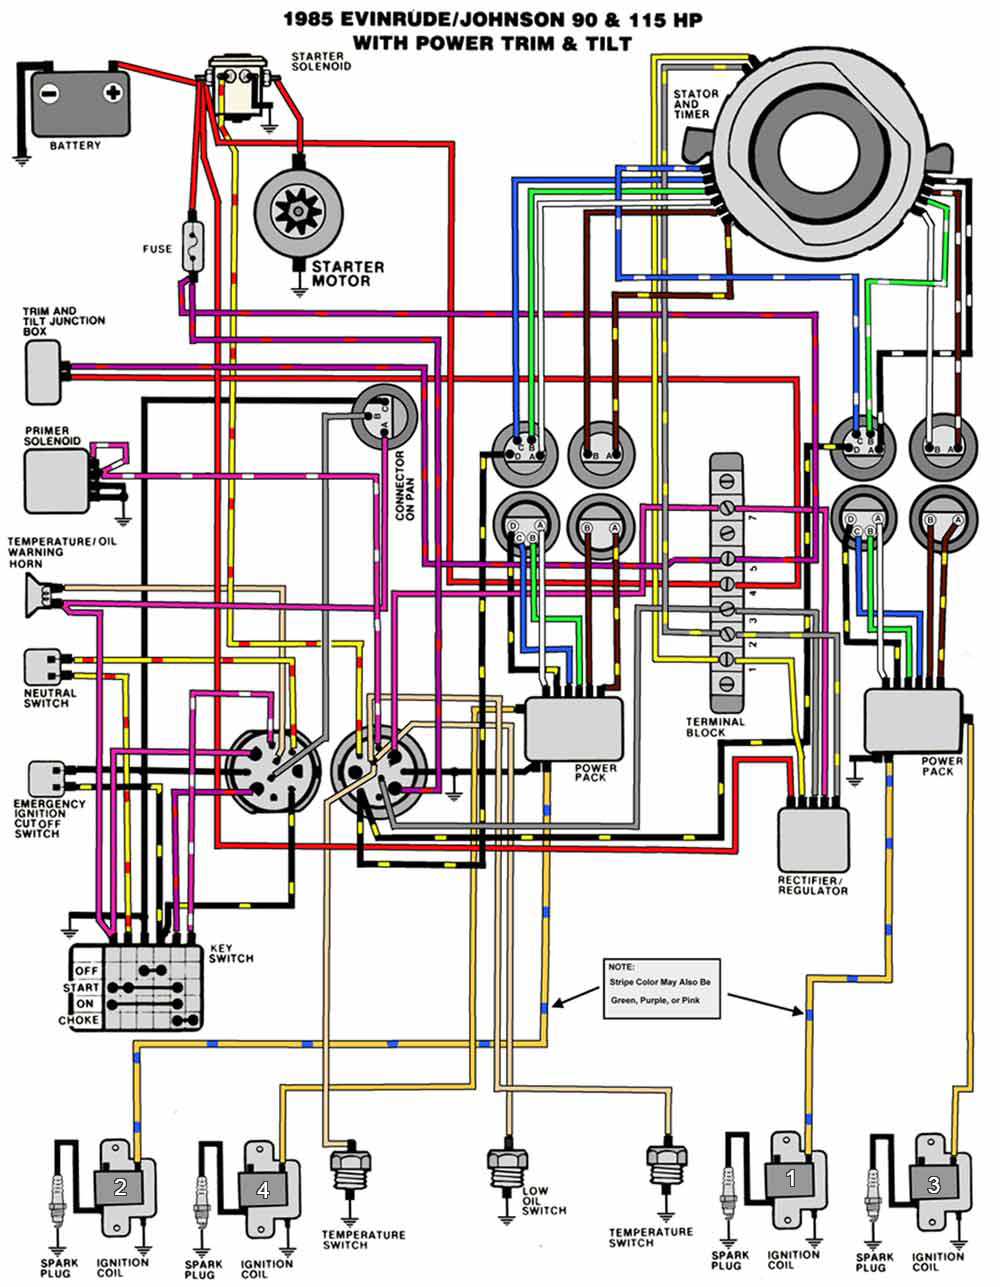 1985_90_115TnT mastertech marine evinrude johnson outboard wiring diagrams omc wiring harness diagram at virtualis.co